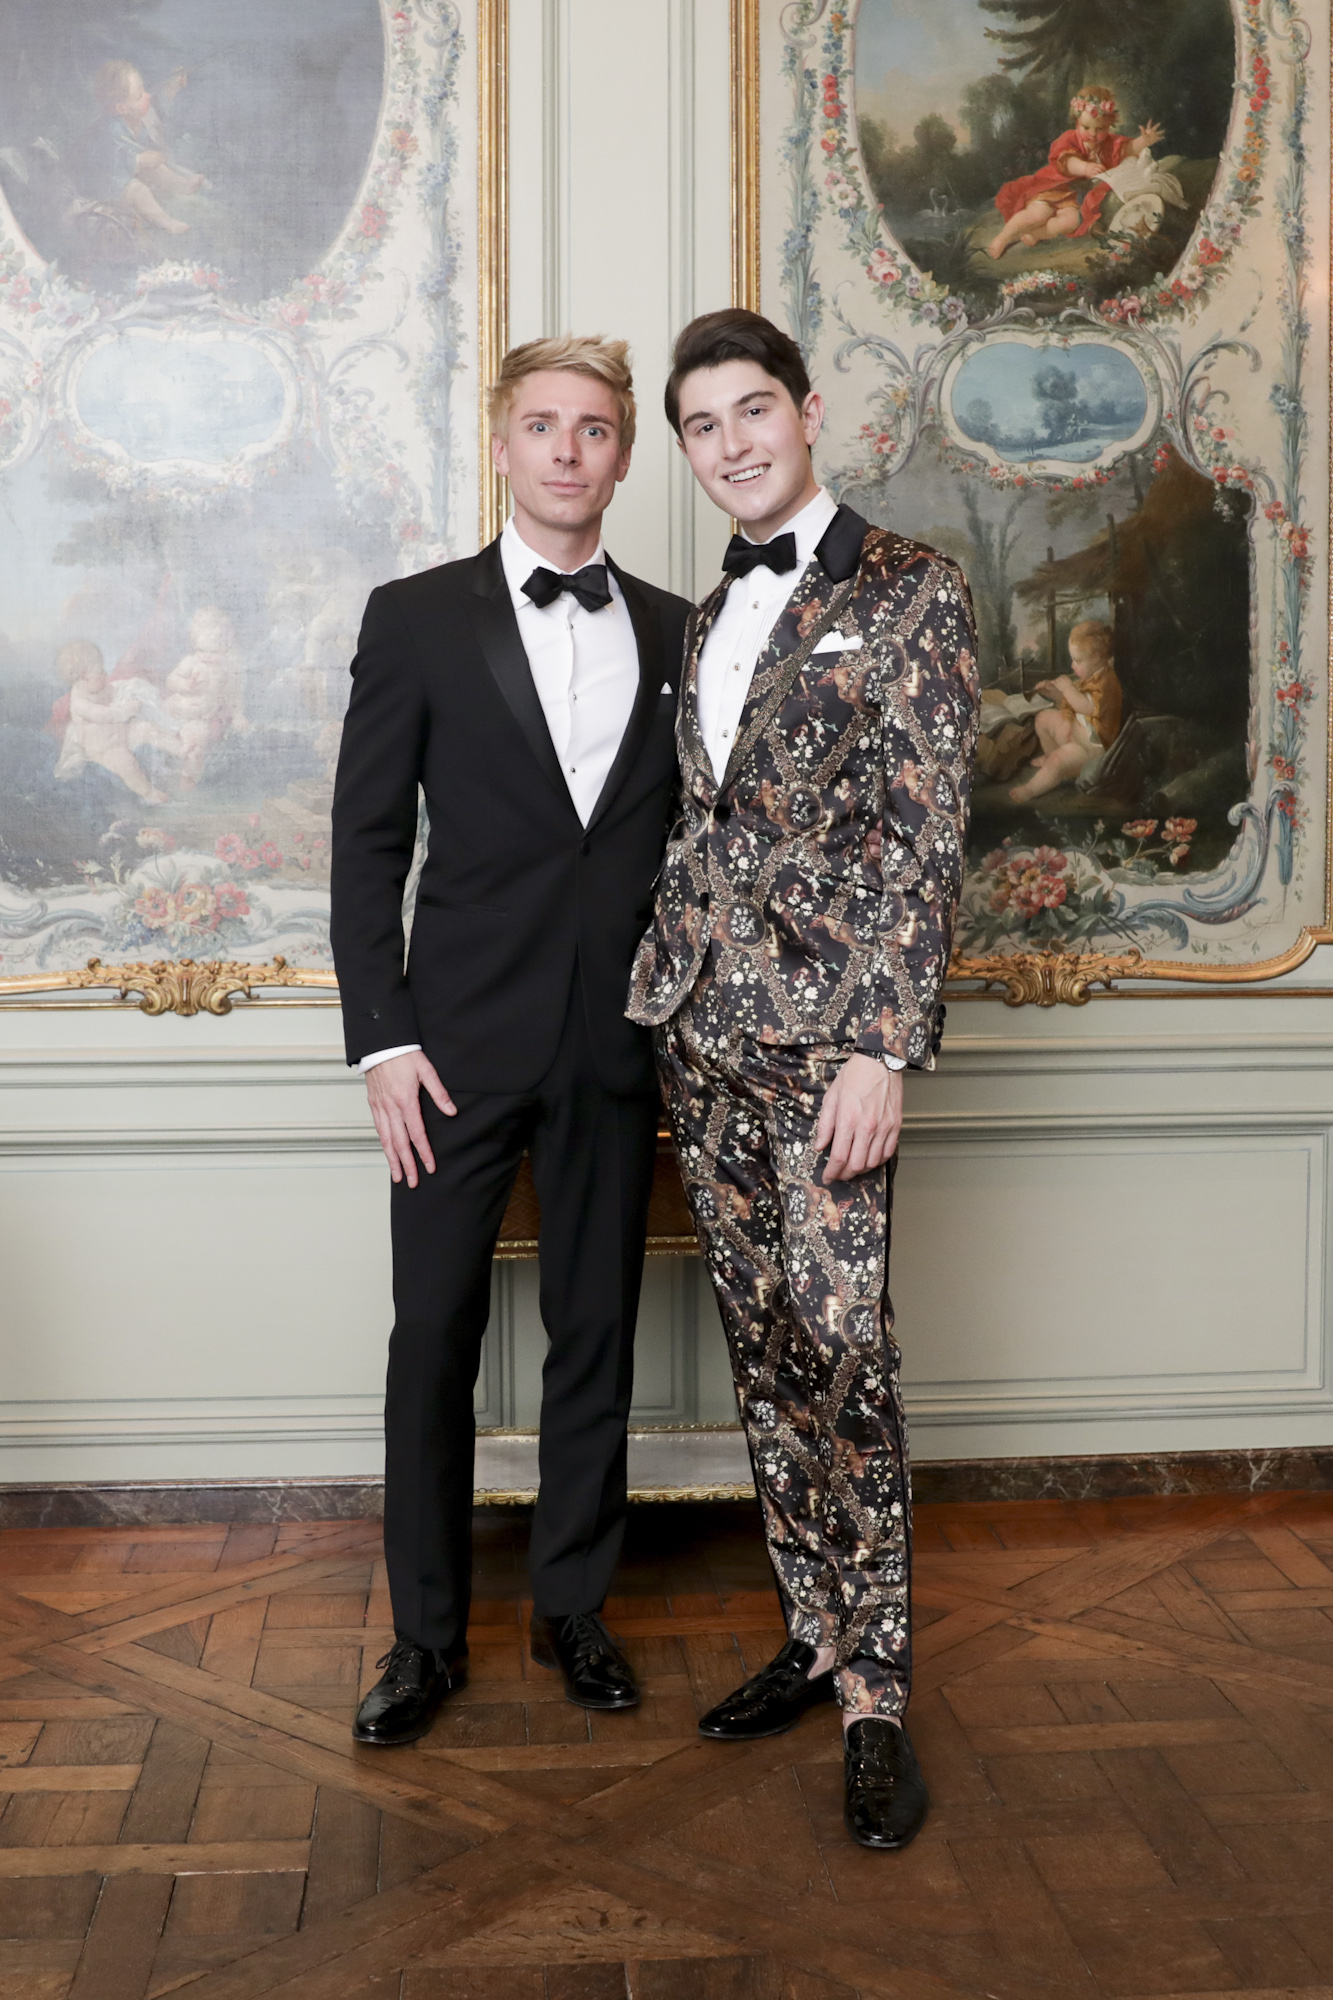 Brian Drost and Larry Milstein attend The Frick Collection's 20th Annual Young Fellows Ball at 1 East 70th Street on Thursday, March 21st, 2019. Photography, Courtesy of The Frick Collection.